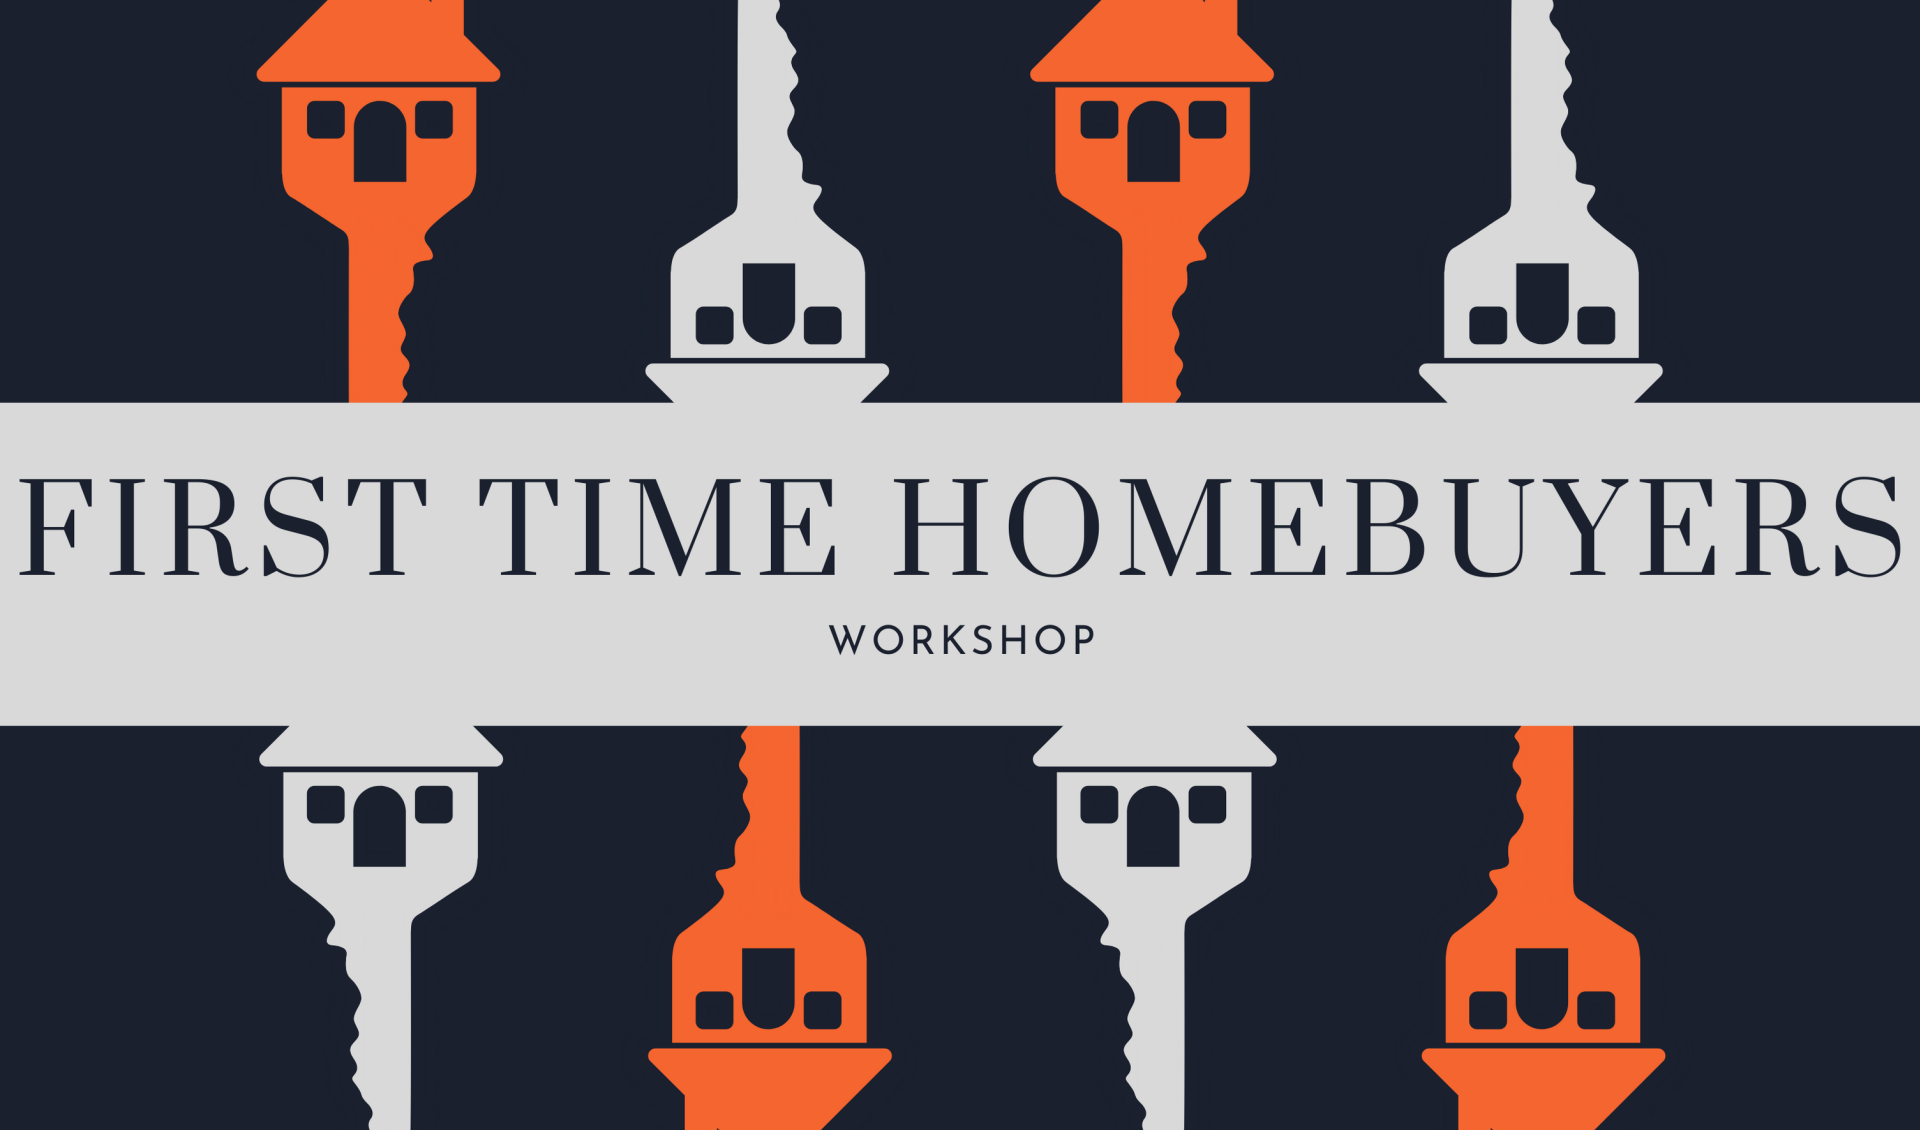 First Time Homebuyers Workshop